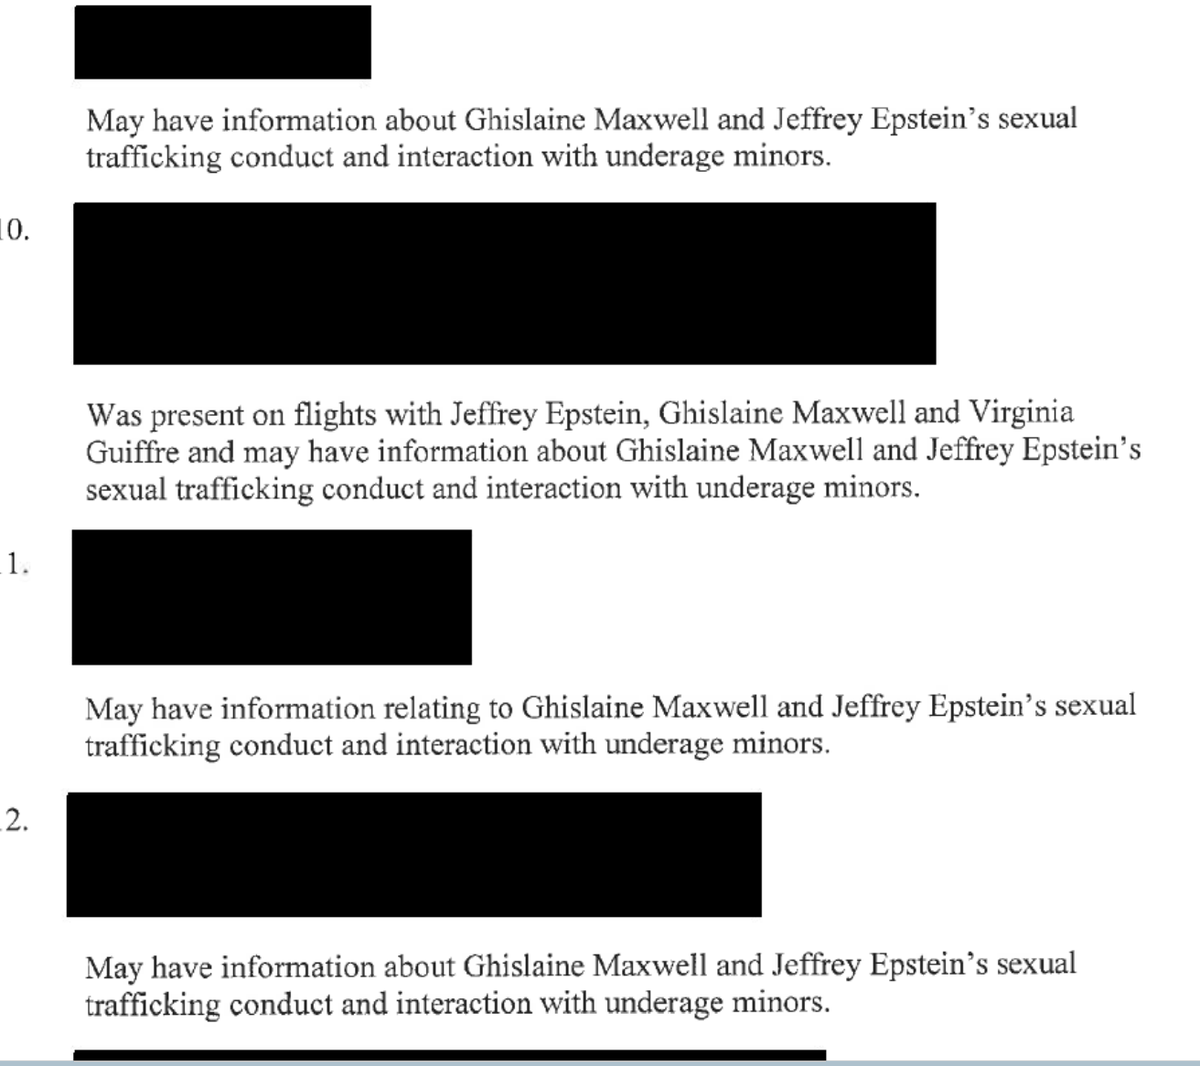 NEW: What's most newsworthy about this release of documents is how much of it is still sealed and hidden from public scrutiny. Here are the names of people who may have info about Epstein's sex trafficking. All of them are blacked out.